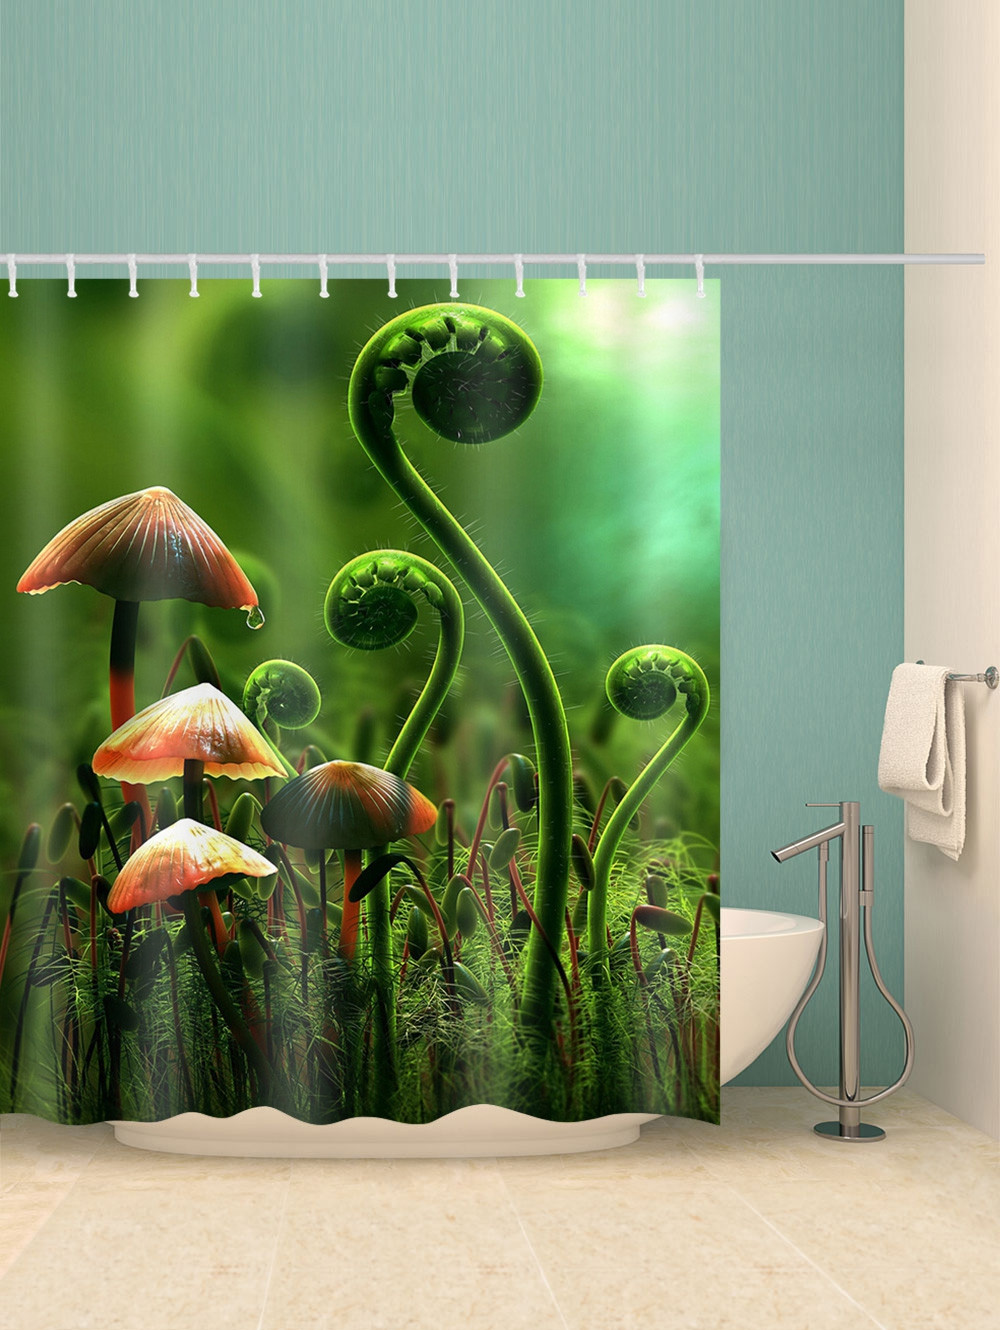 Fern and Mushroom Print Waterproof Bathroom Shower Curtain